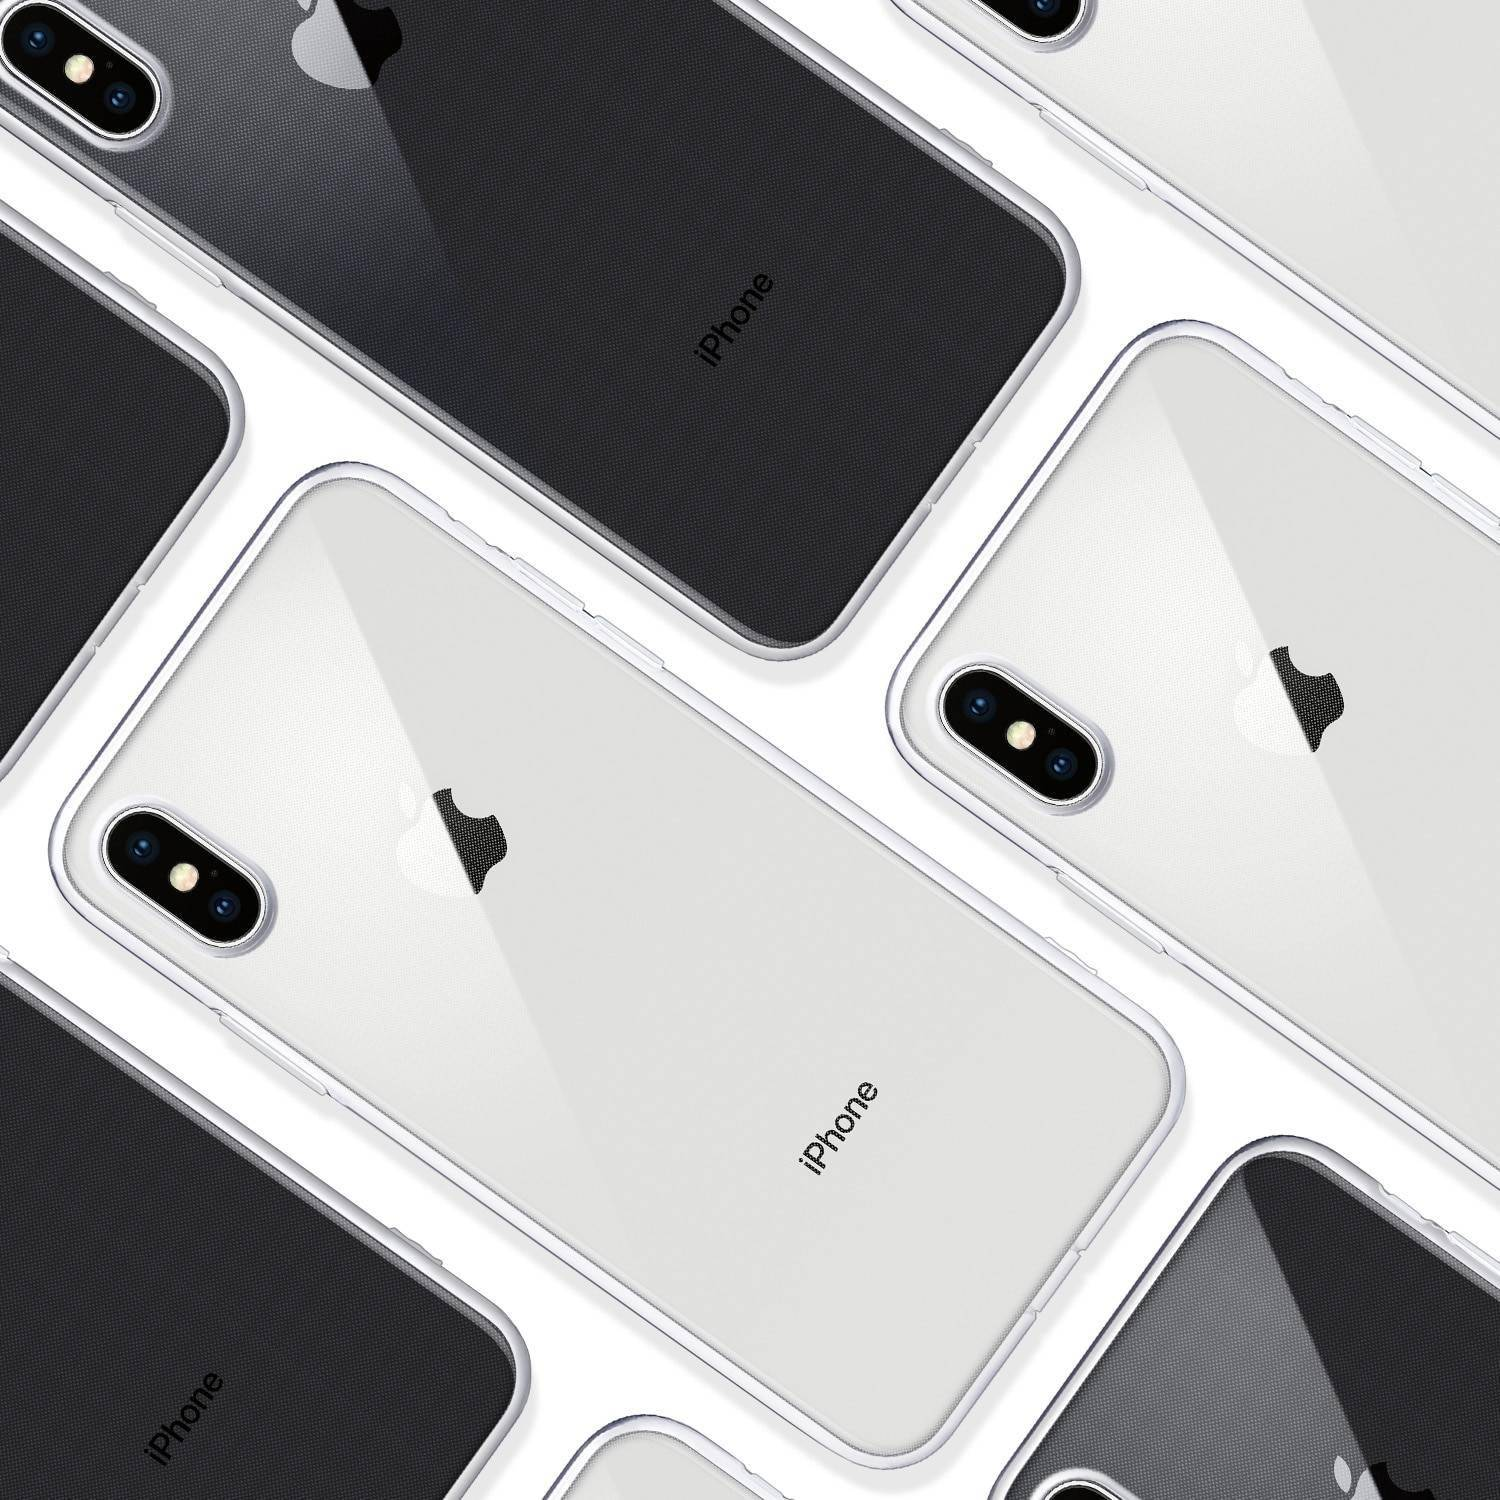 Transparent Phone Case for iPhone New Arrivals Phone Cases Smartphone Accessories iPhone cases, wireless speakers, activity trackers & cool gadgets